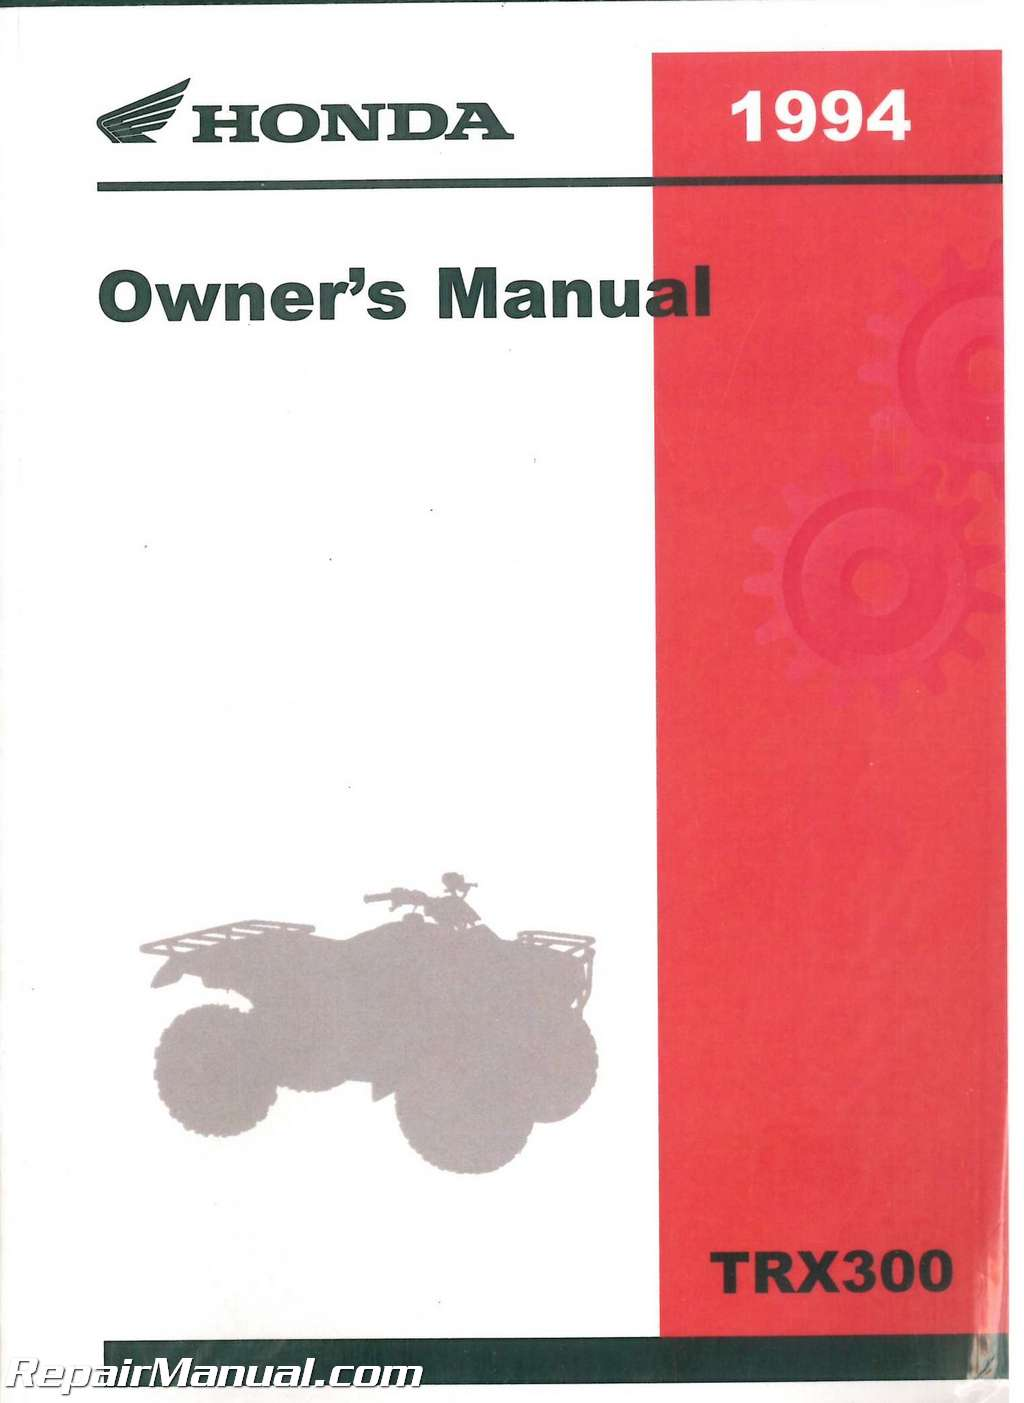 Owners Manual For 1990 Honda Fourtrax